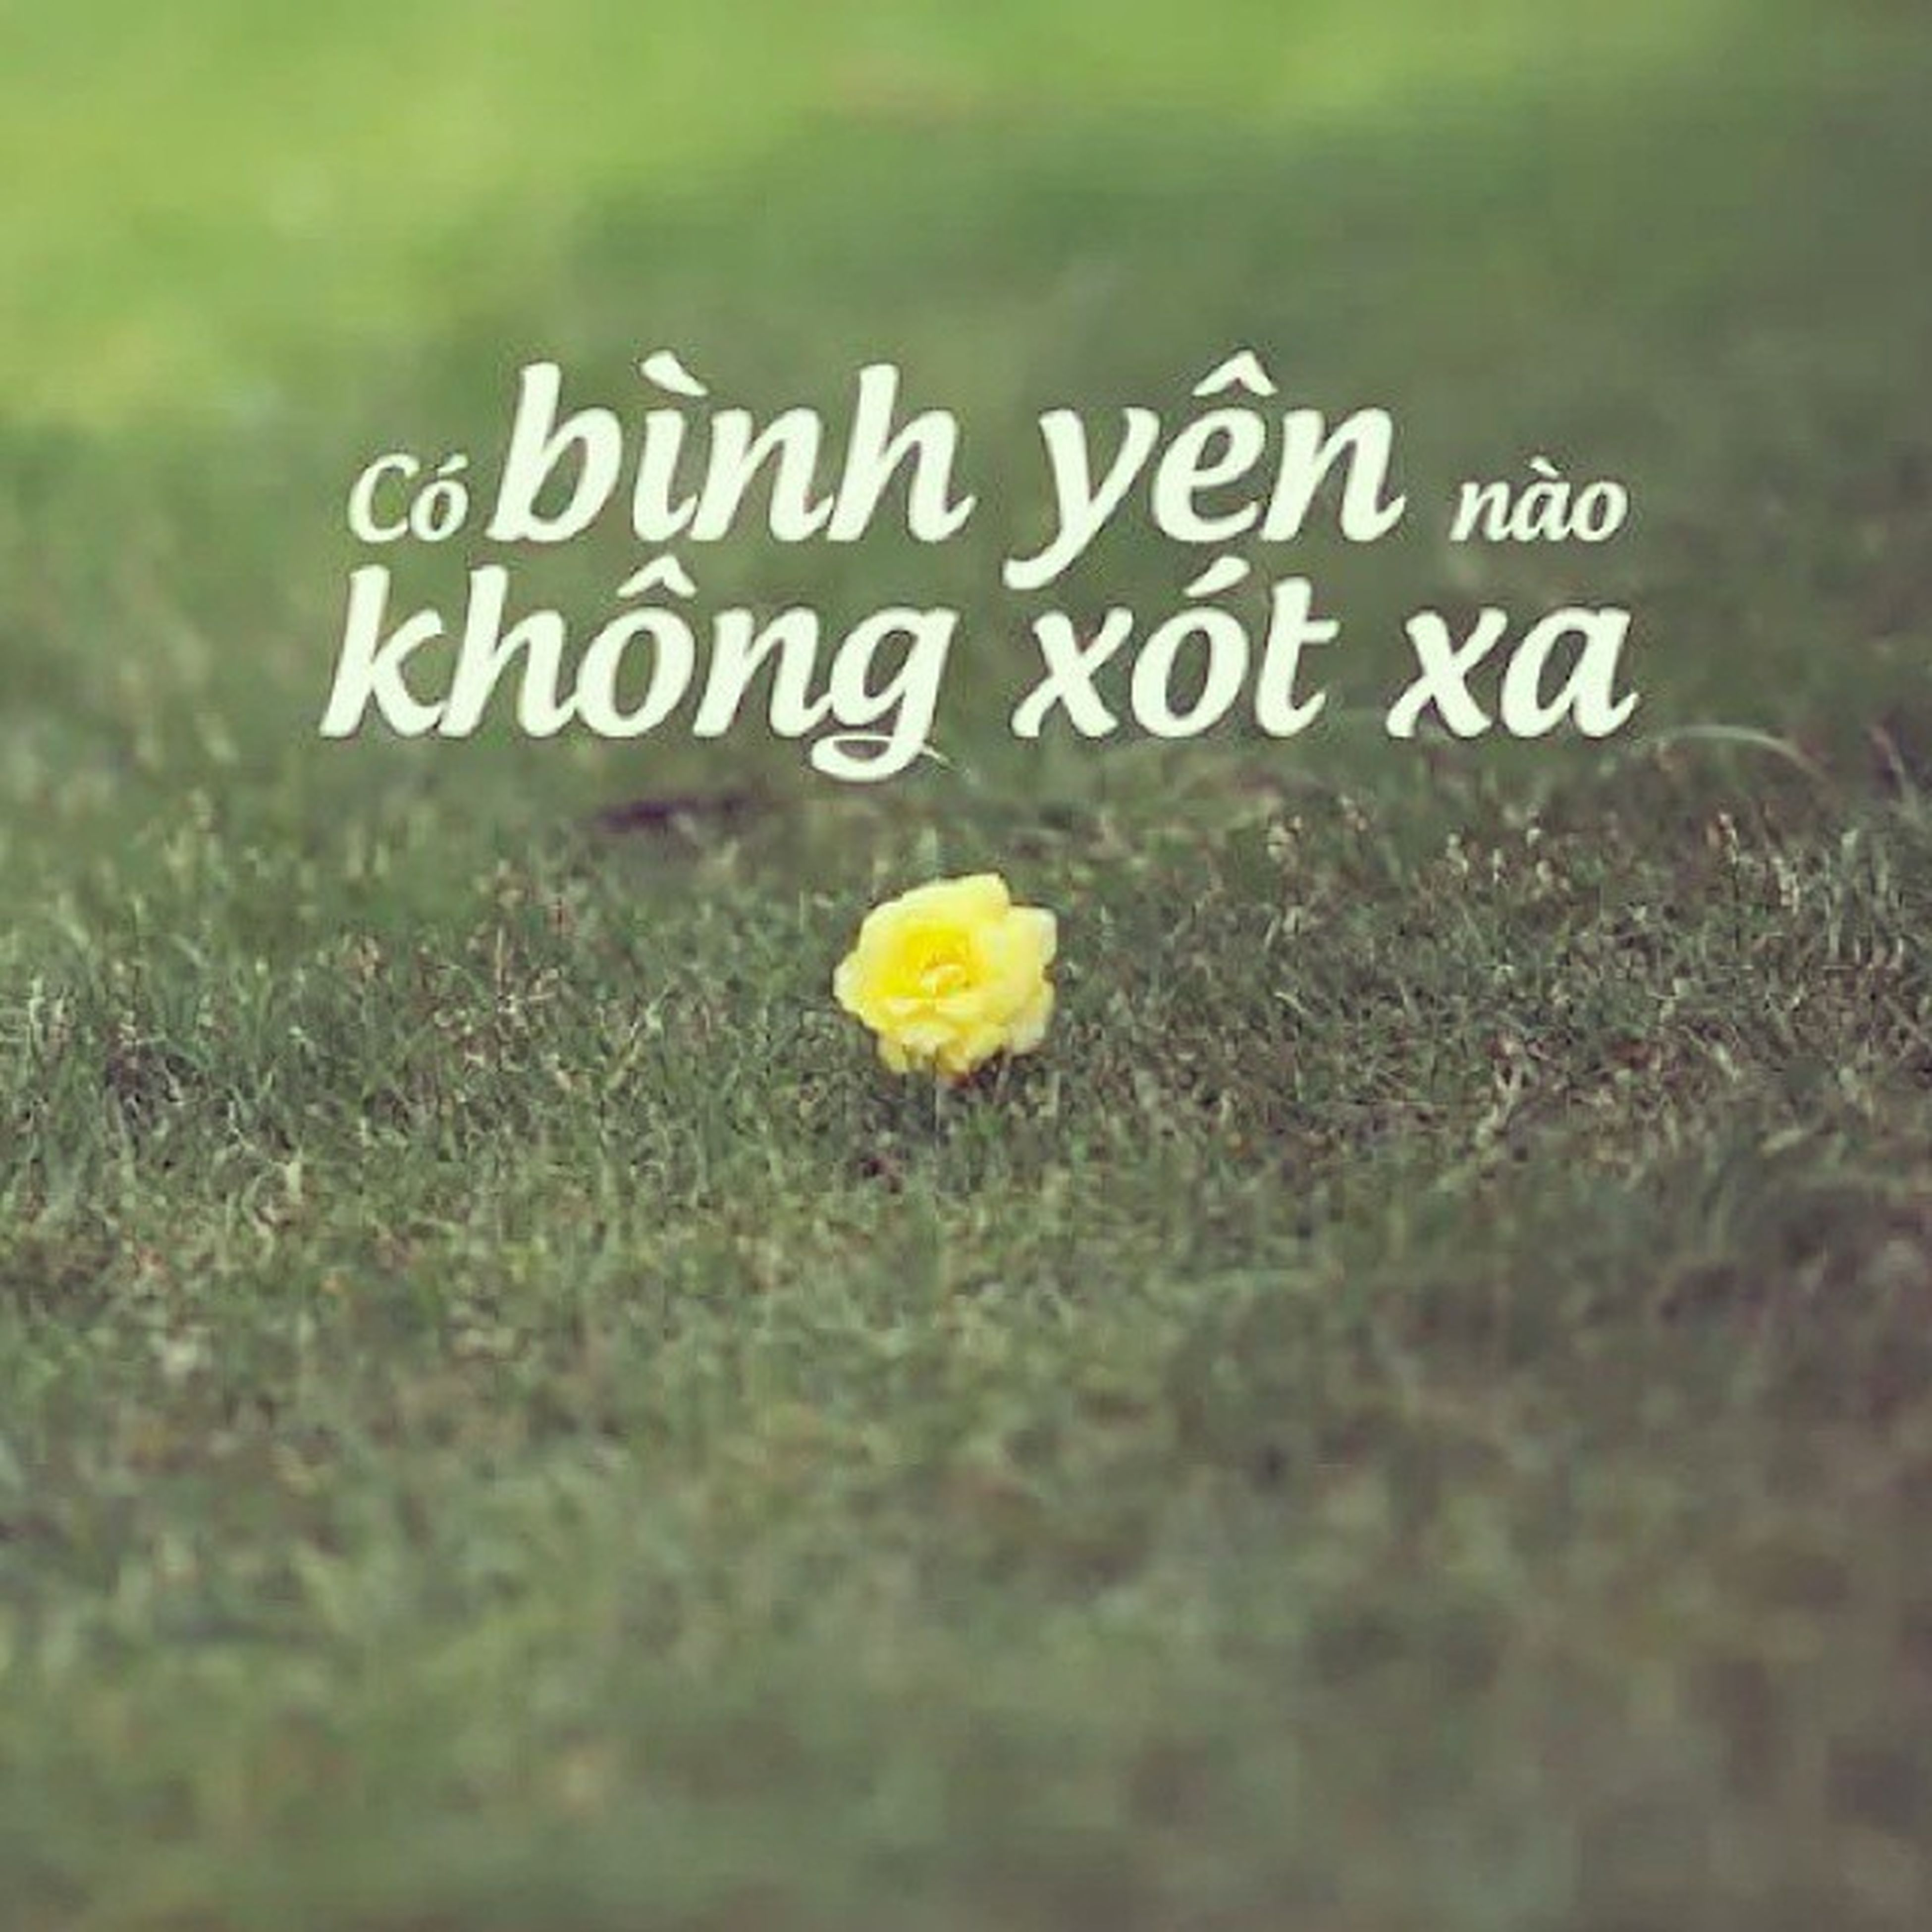 yellow, selective focus, field, grass, text, green color, focus on foreground, close-up, growth, nature, western script, flower, day, plant, outdoors, fragility, no people, beauty in nature, freshness, green